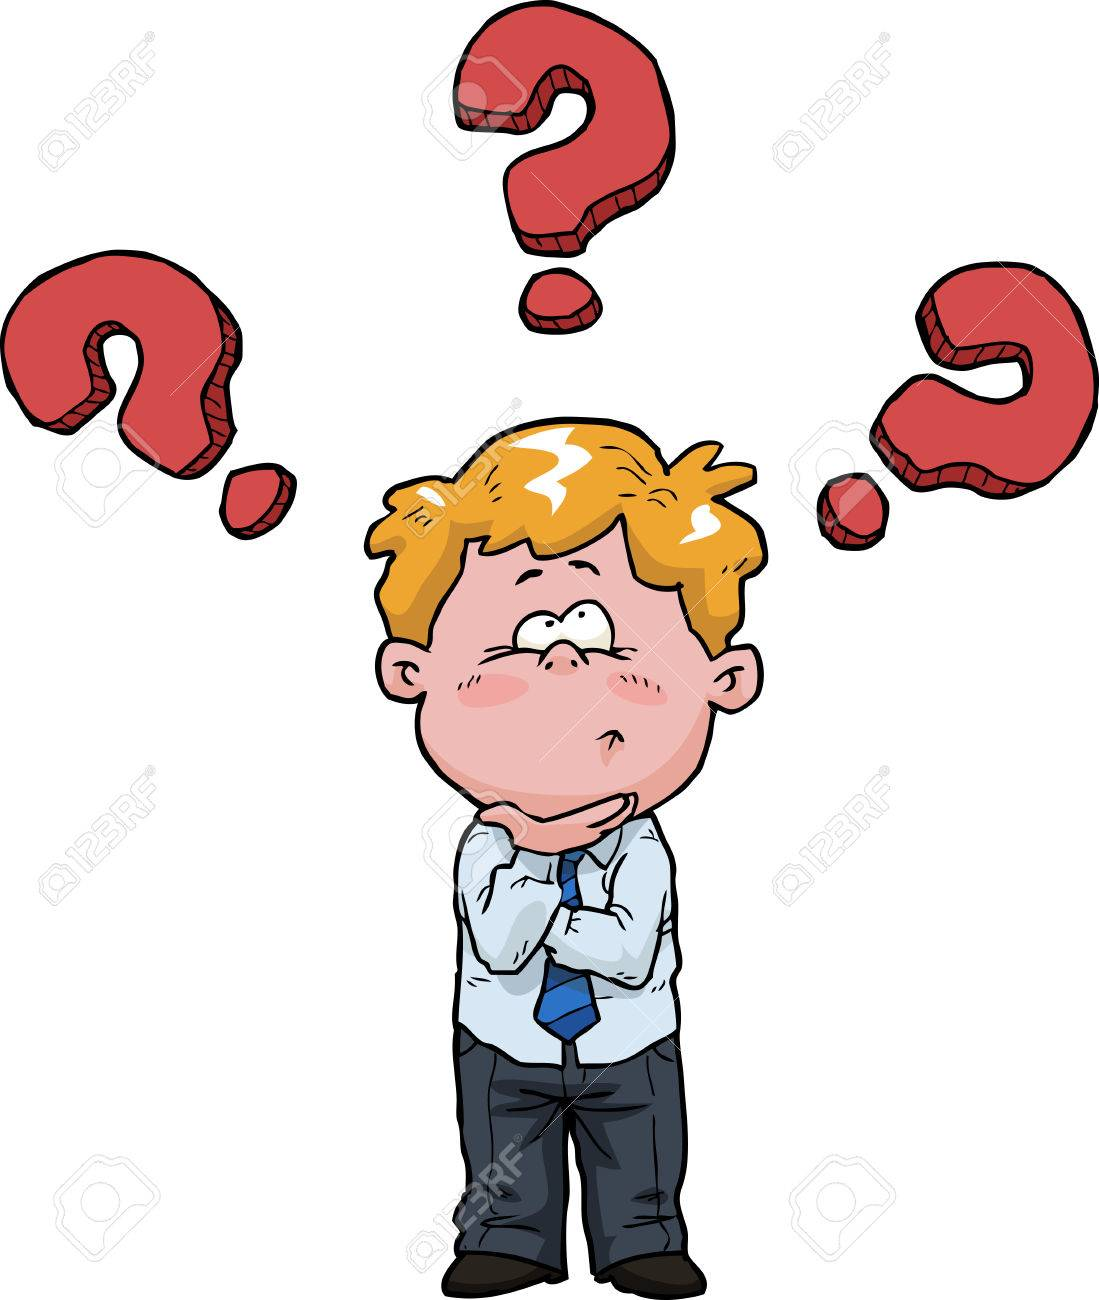 The boy is thinking on a white background vector illustration - 41698537